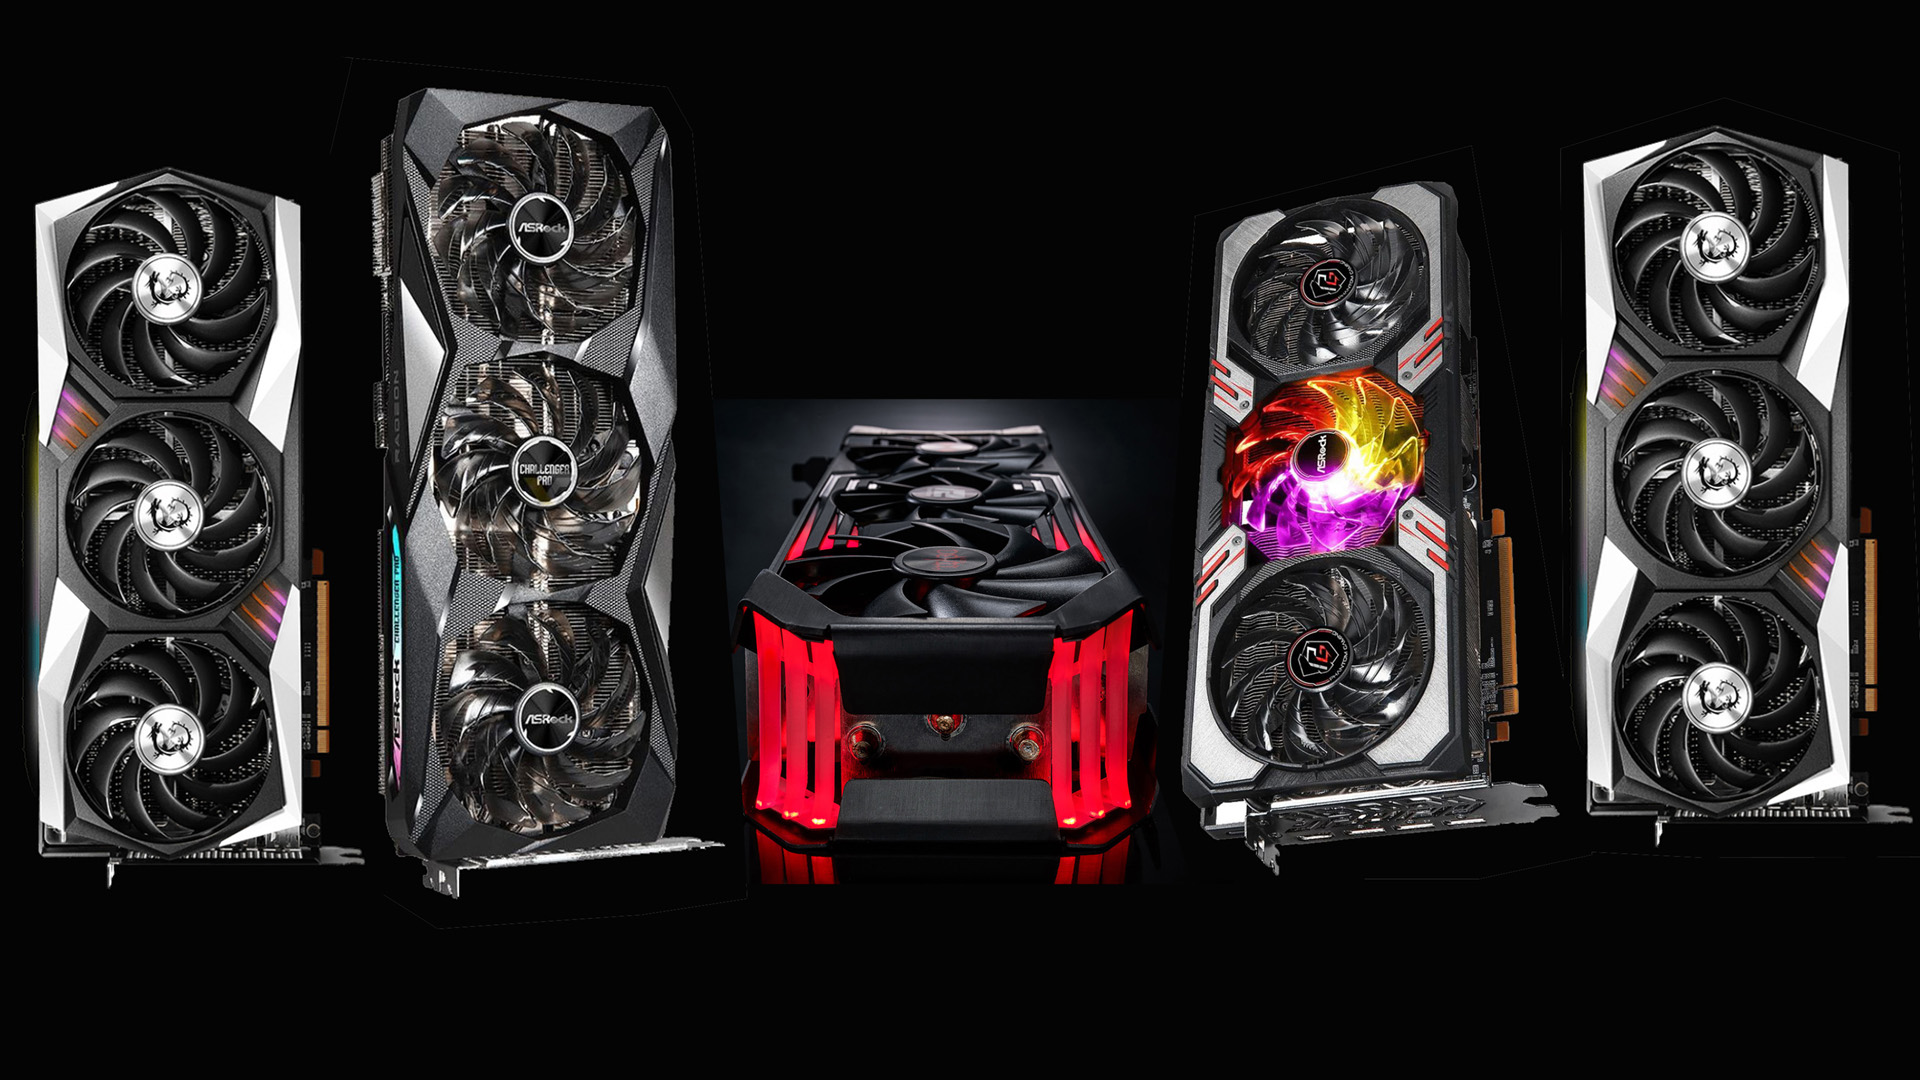 Here's every custom RX 6800 and 6800 XT graphics card announced so far, all huge